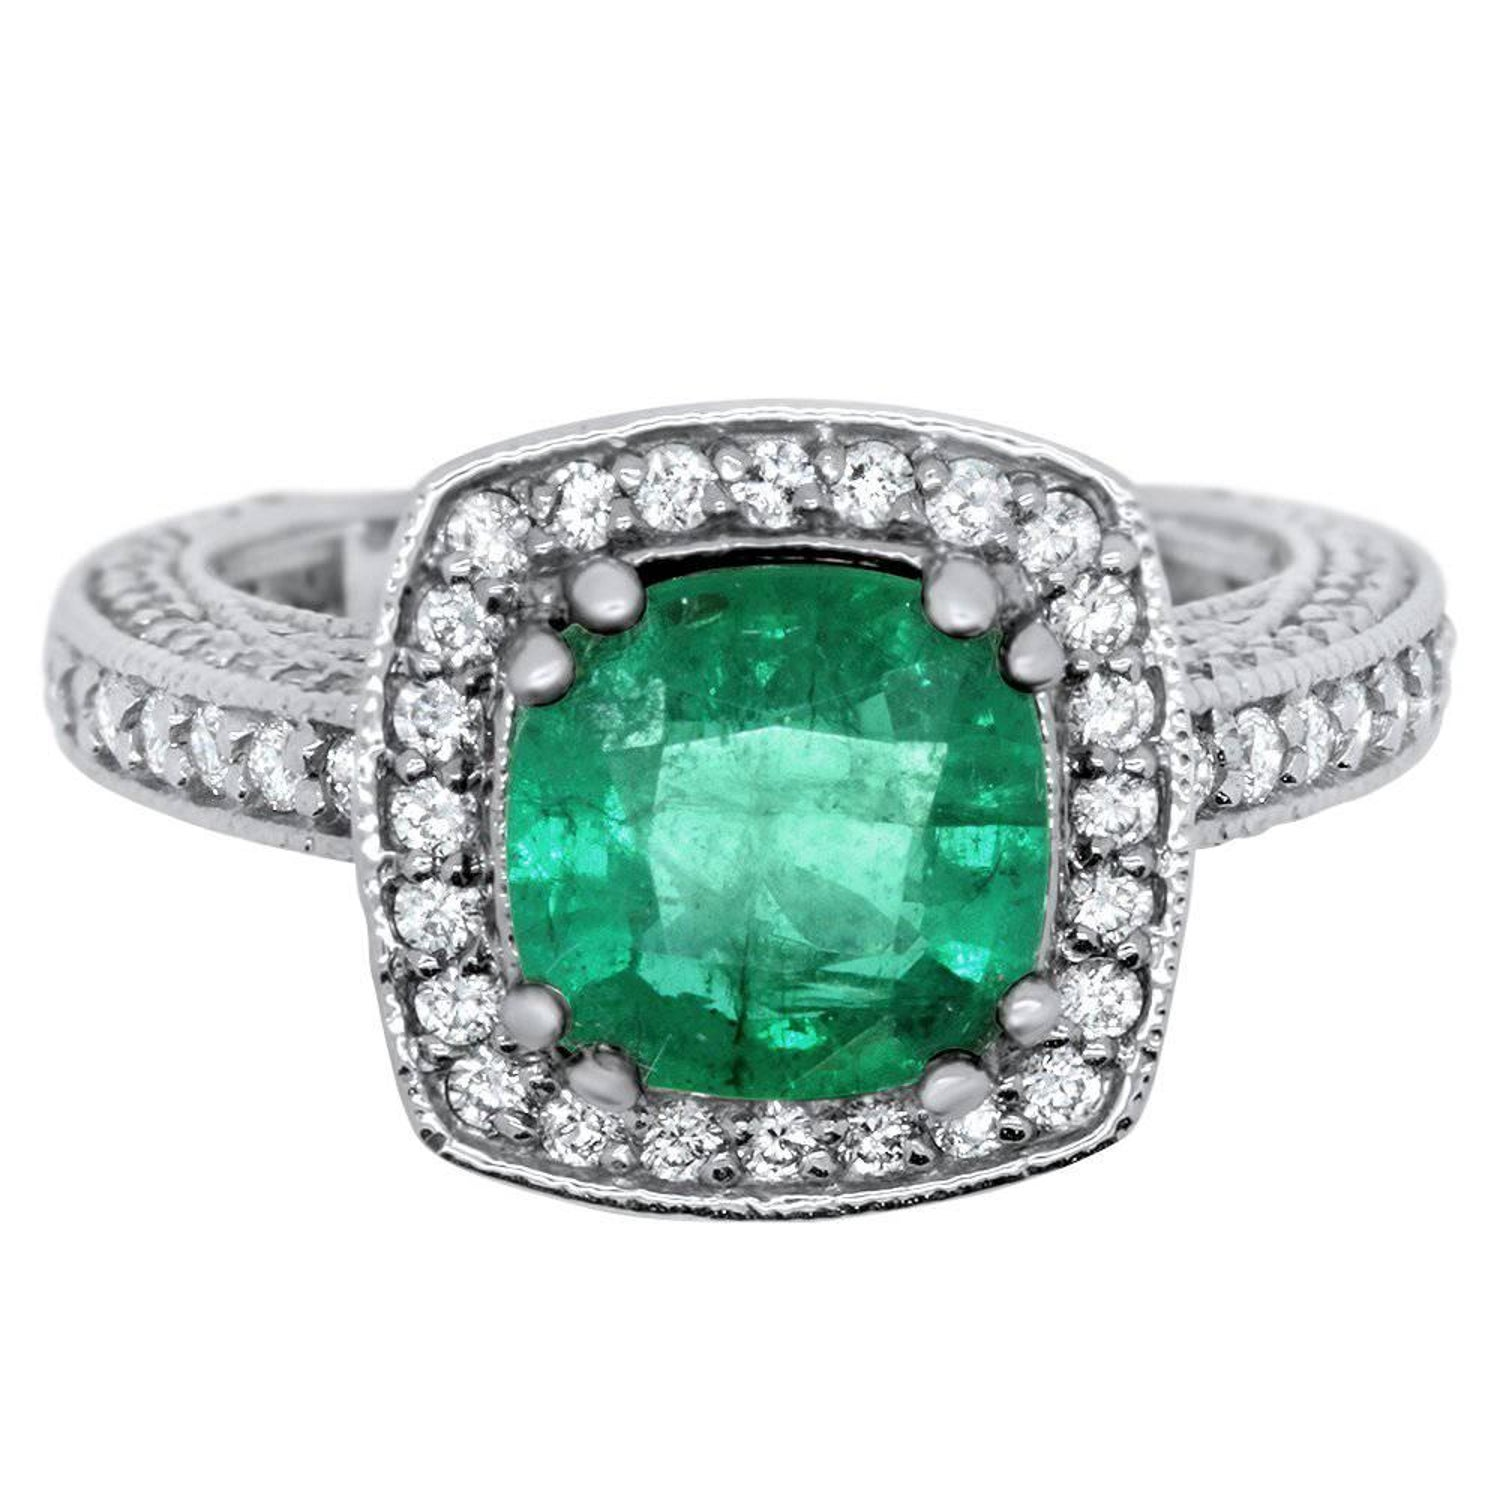 diamond size impressivehion rings haute pinterest impressive pictures emerald ring cushion joaillerie of full ideas engagement cut